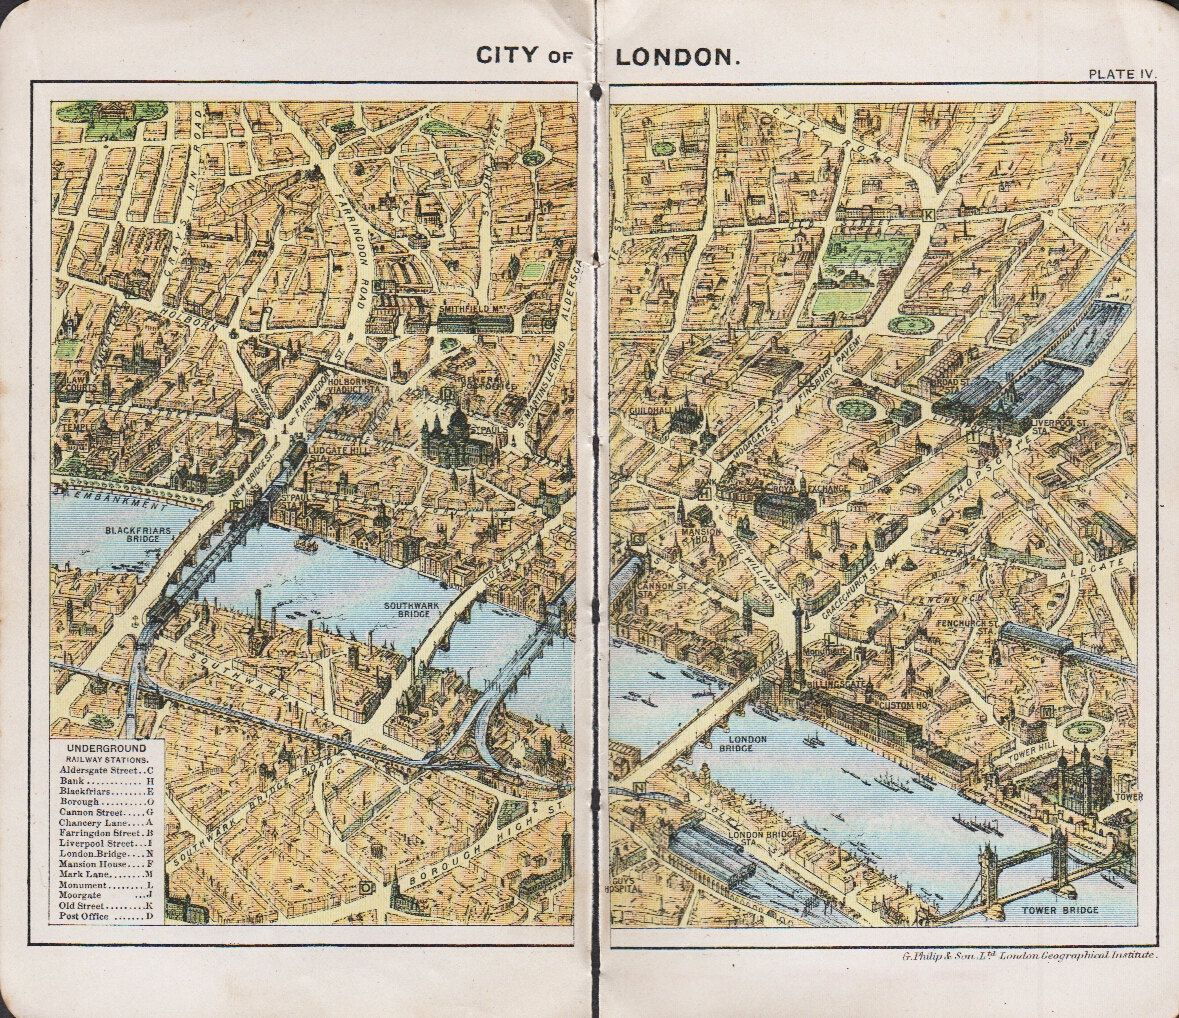 1928 city of london map vintage london street map london places of interest london guide map